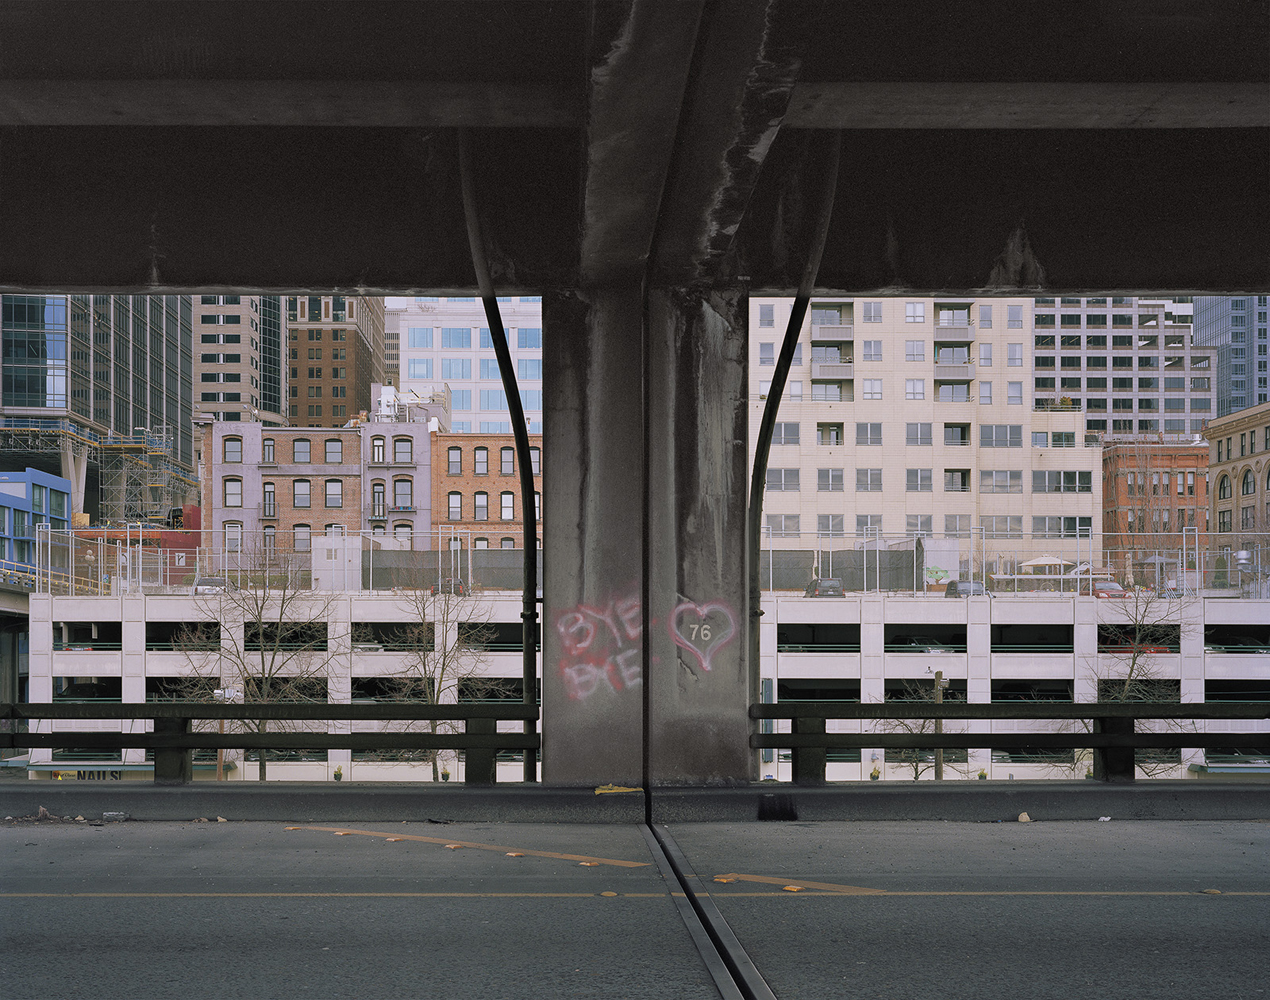 Eirik Johnson, Viaduct H, 2019